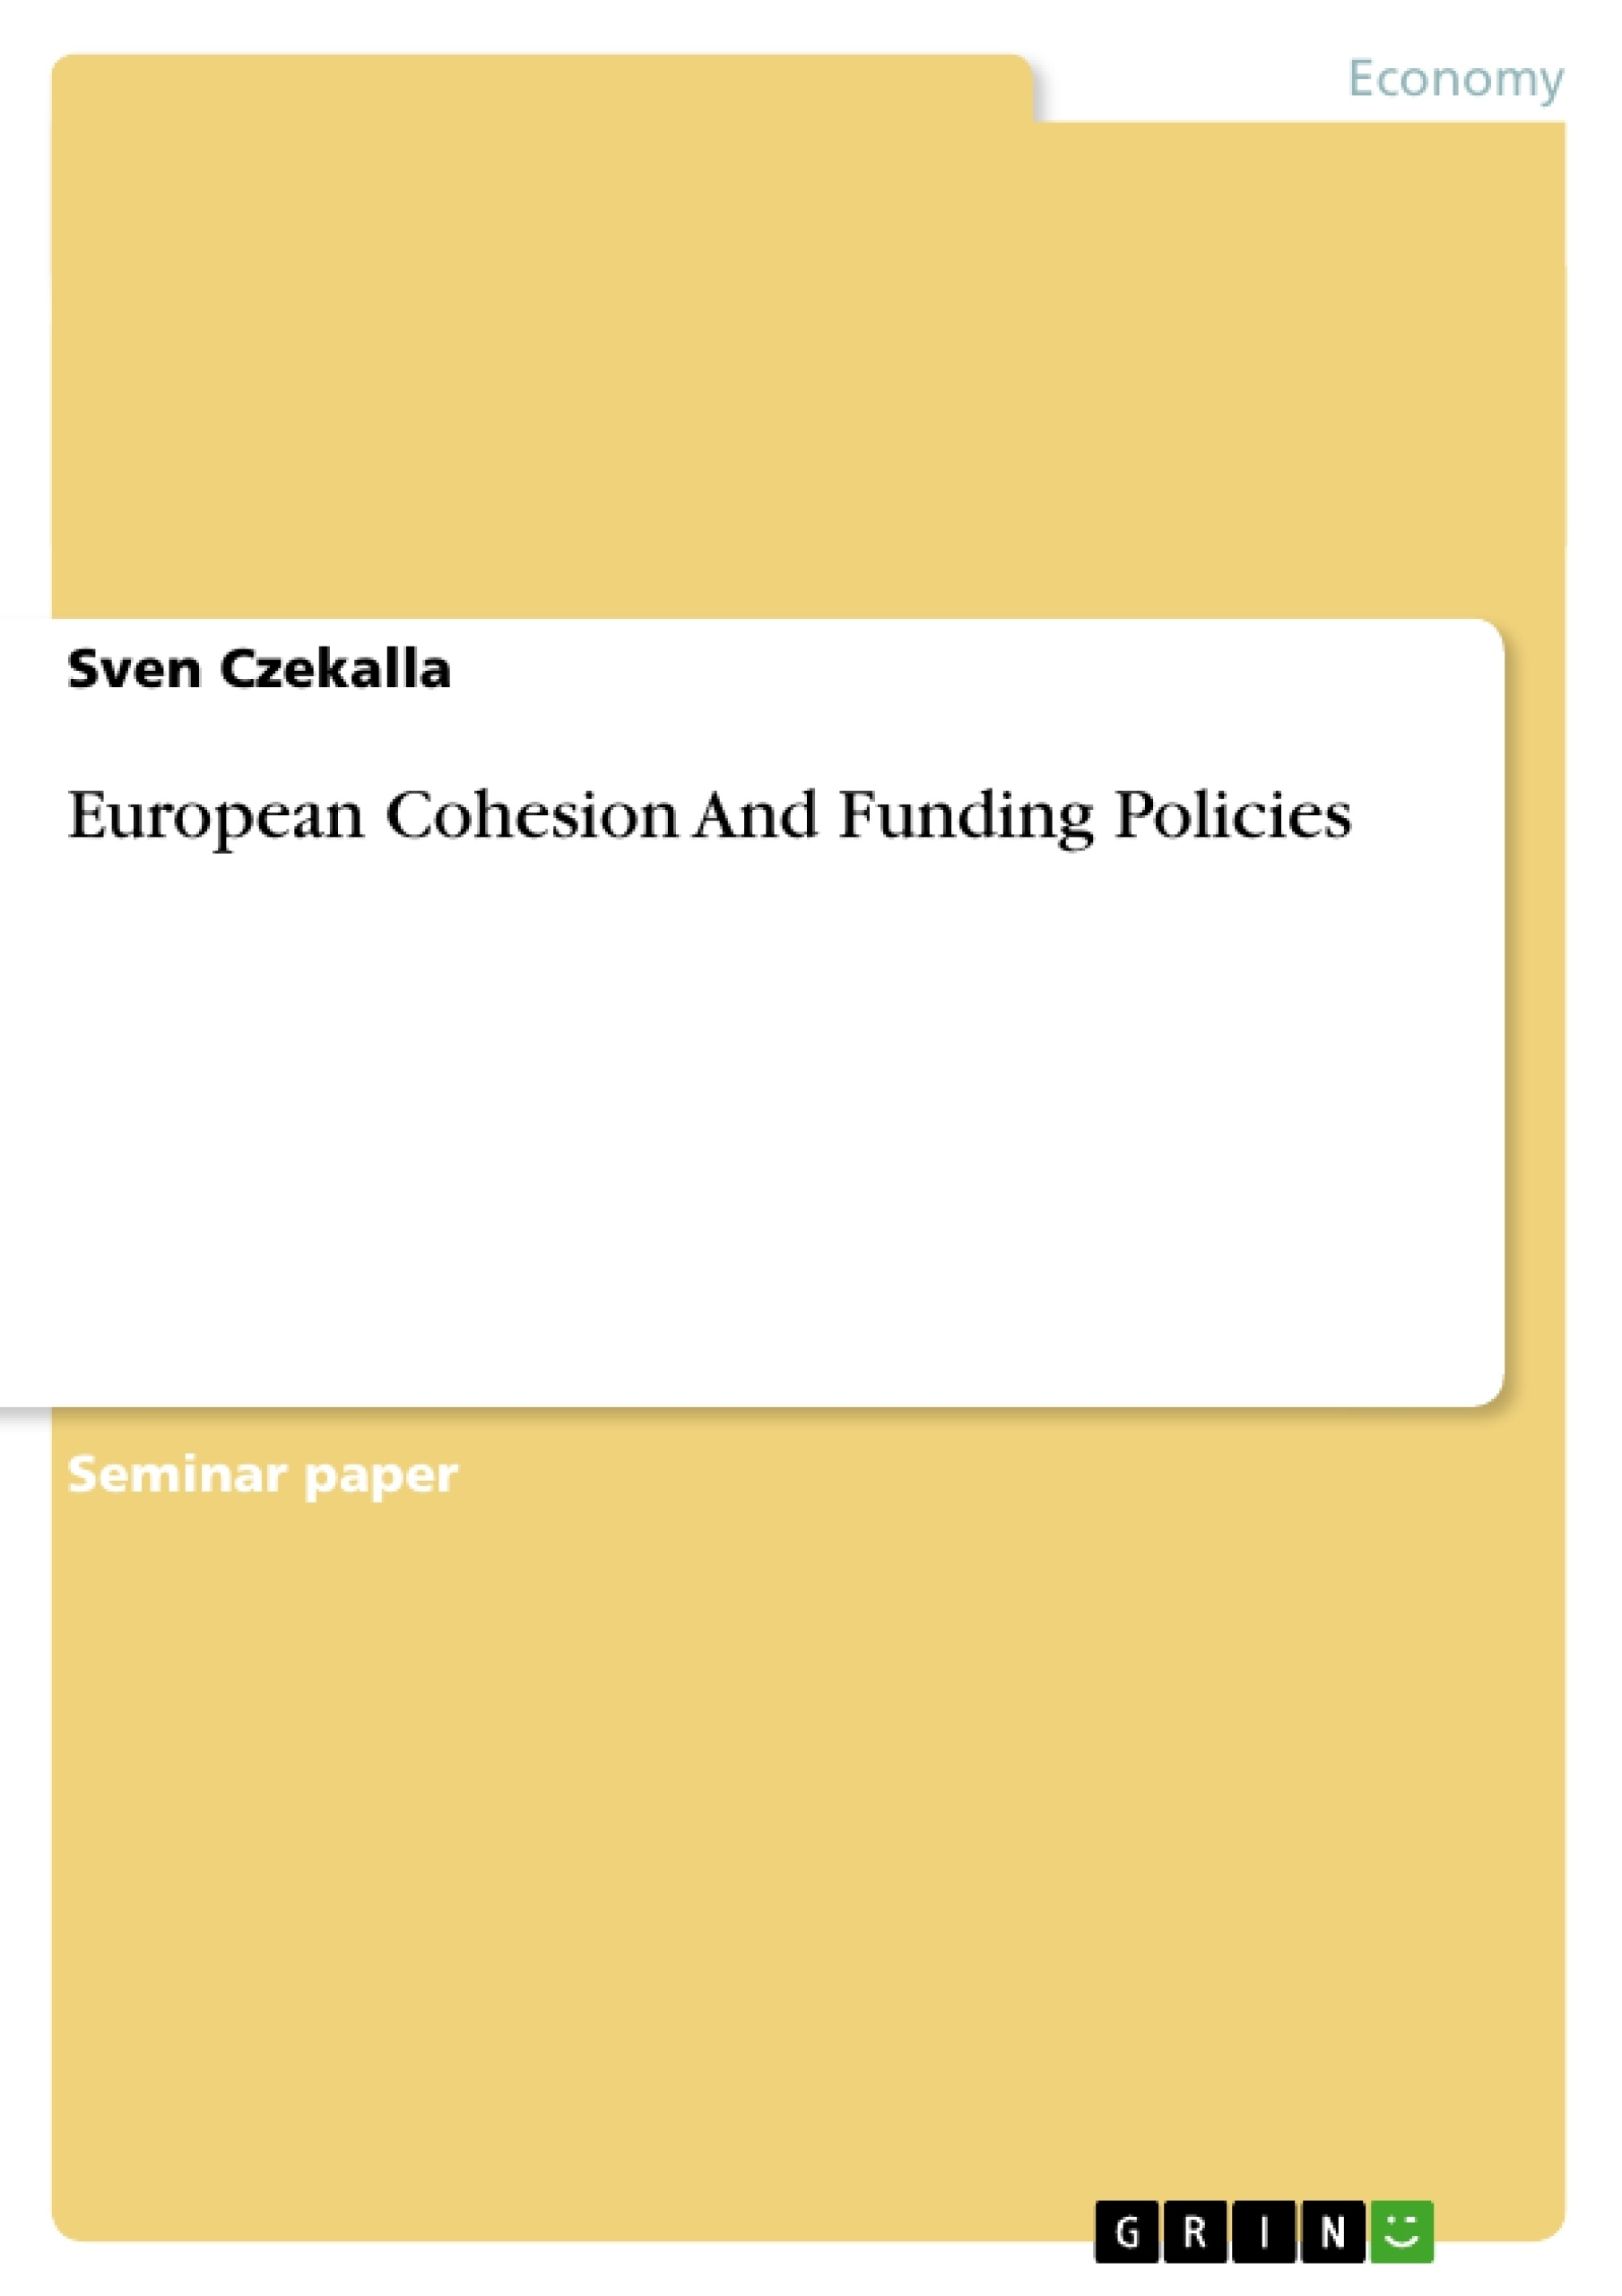 Title: European Cohesion And Funding Policies